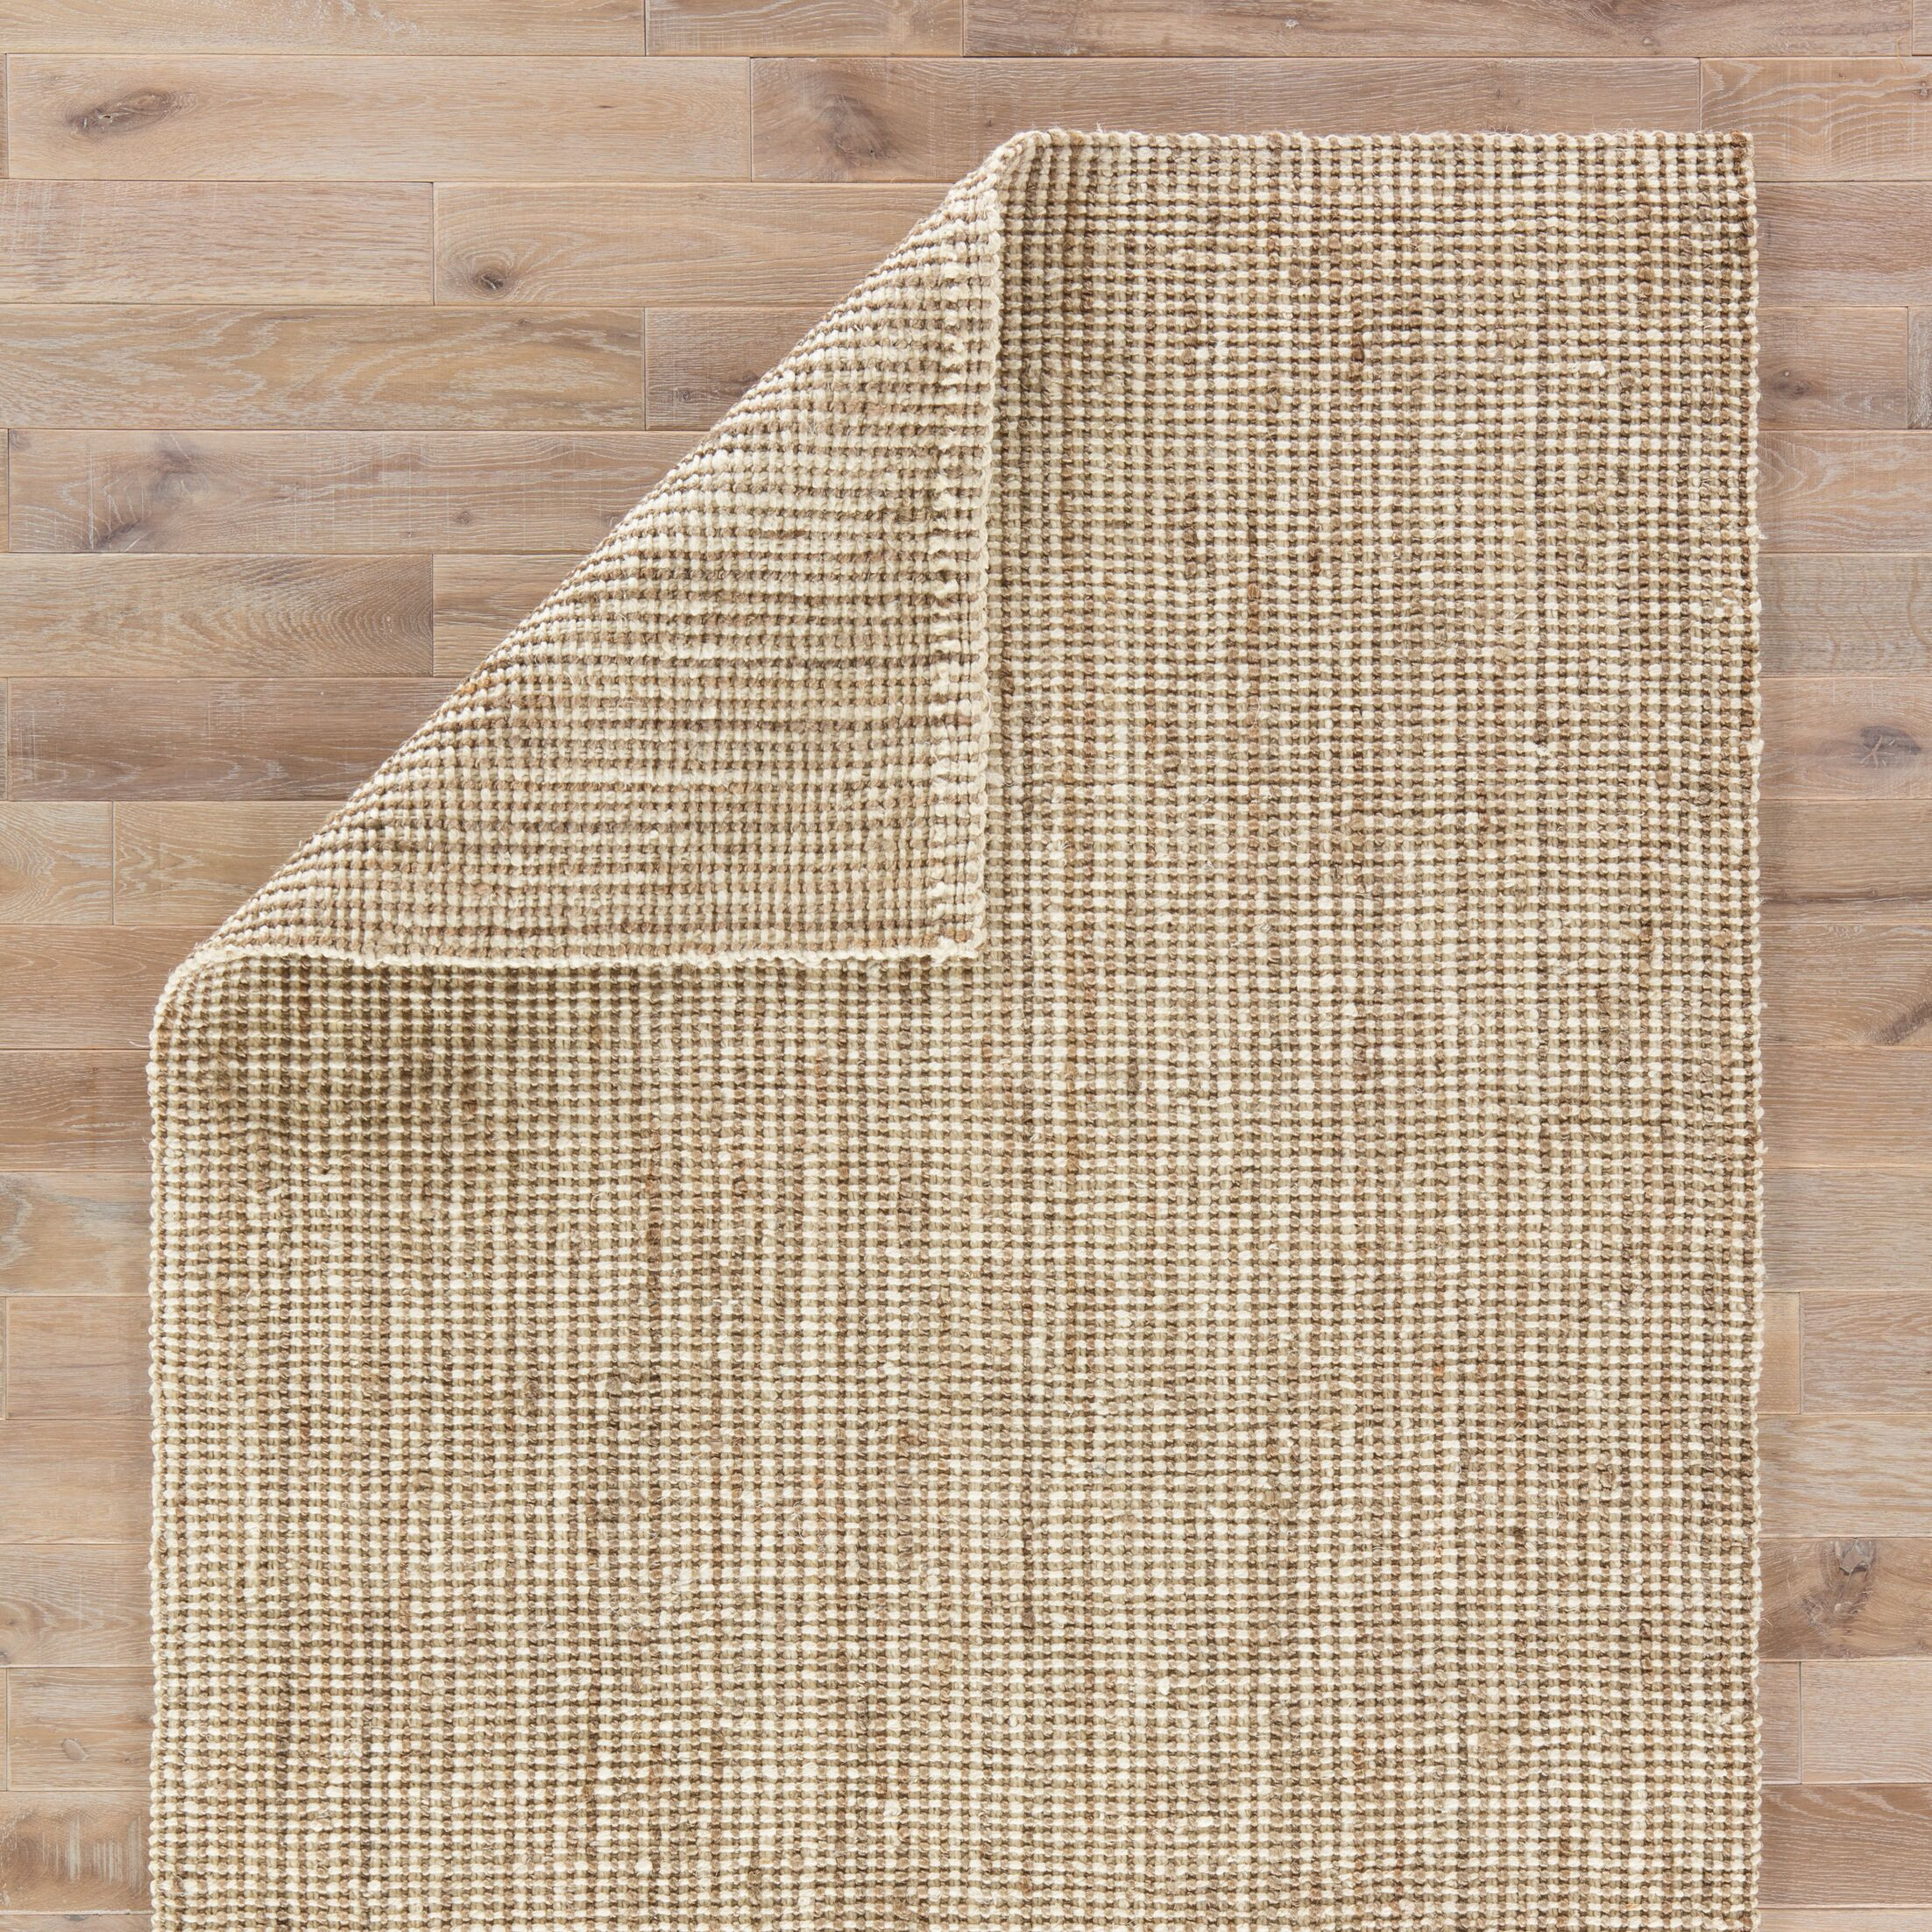 Cayman Hand Woven Tan Area Rug Rug Size: Rectangle 9' x 12'